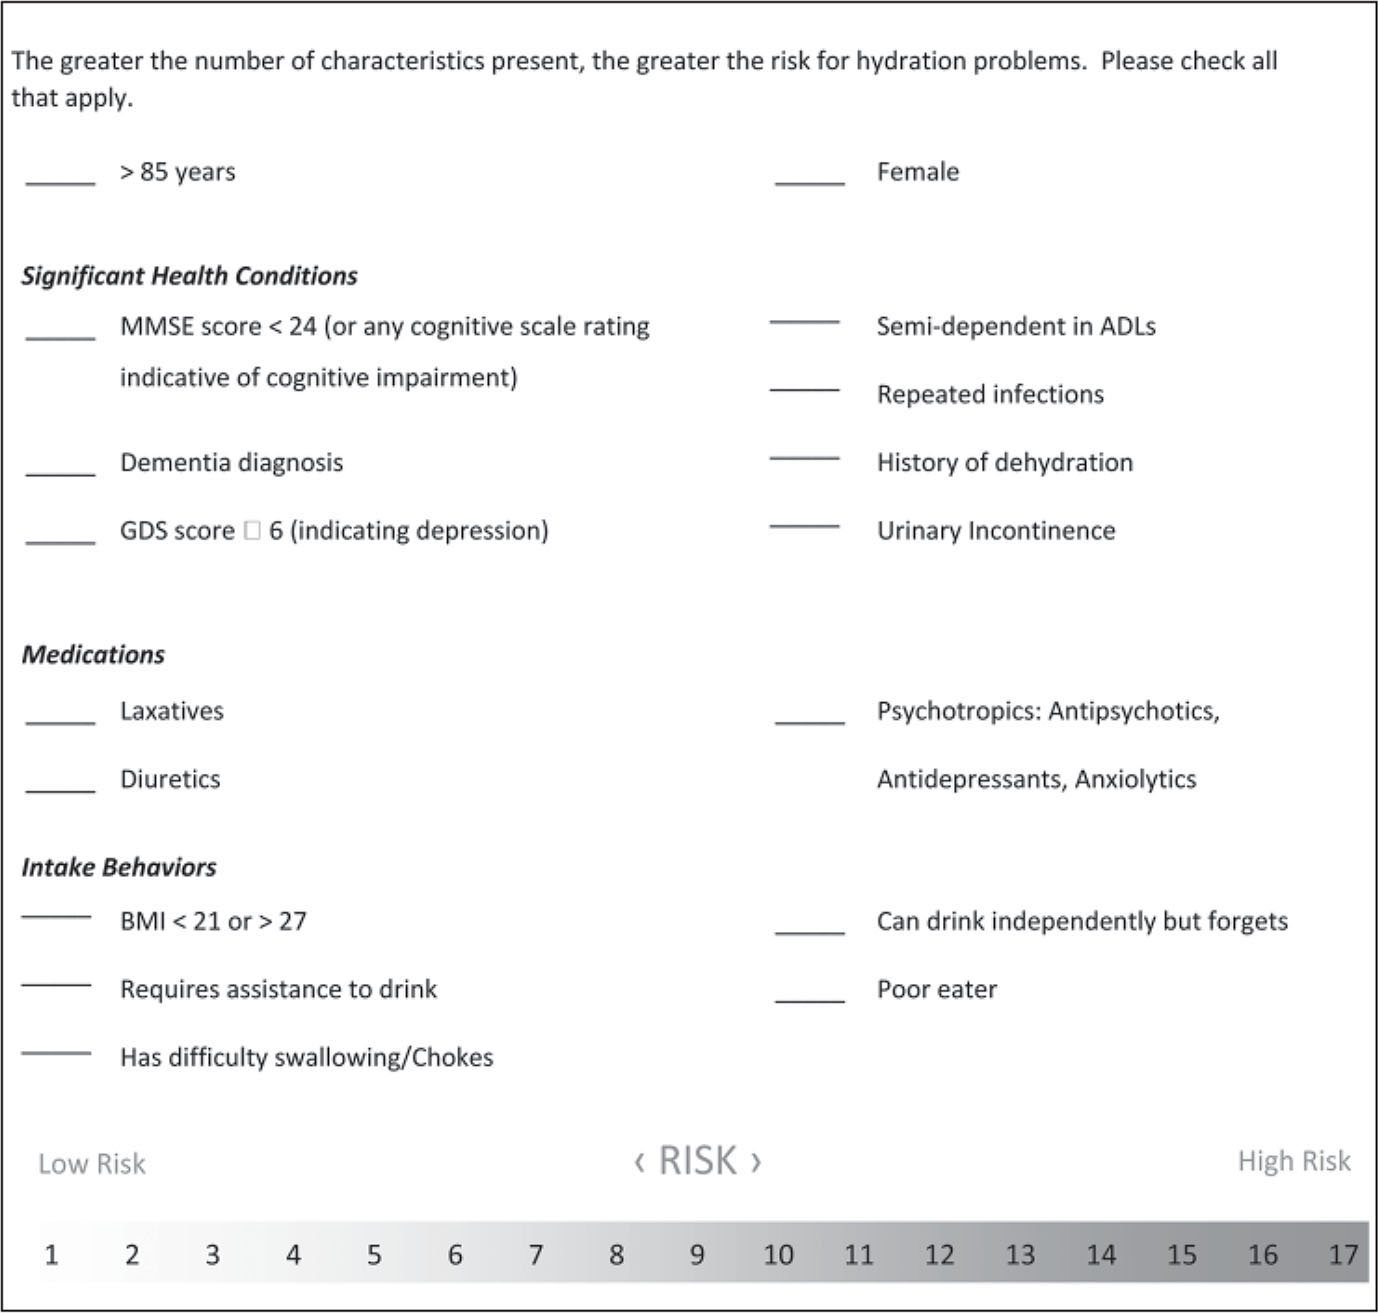 Dehydration risk appraisal checklist.Note. MMSE = Mini-Mental State Examination; ADLs = activities of daily living; GDS = Geriatric Depression Scale; BMI = body mass index. Reprinted with permission from Mentes & Wang (2011).